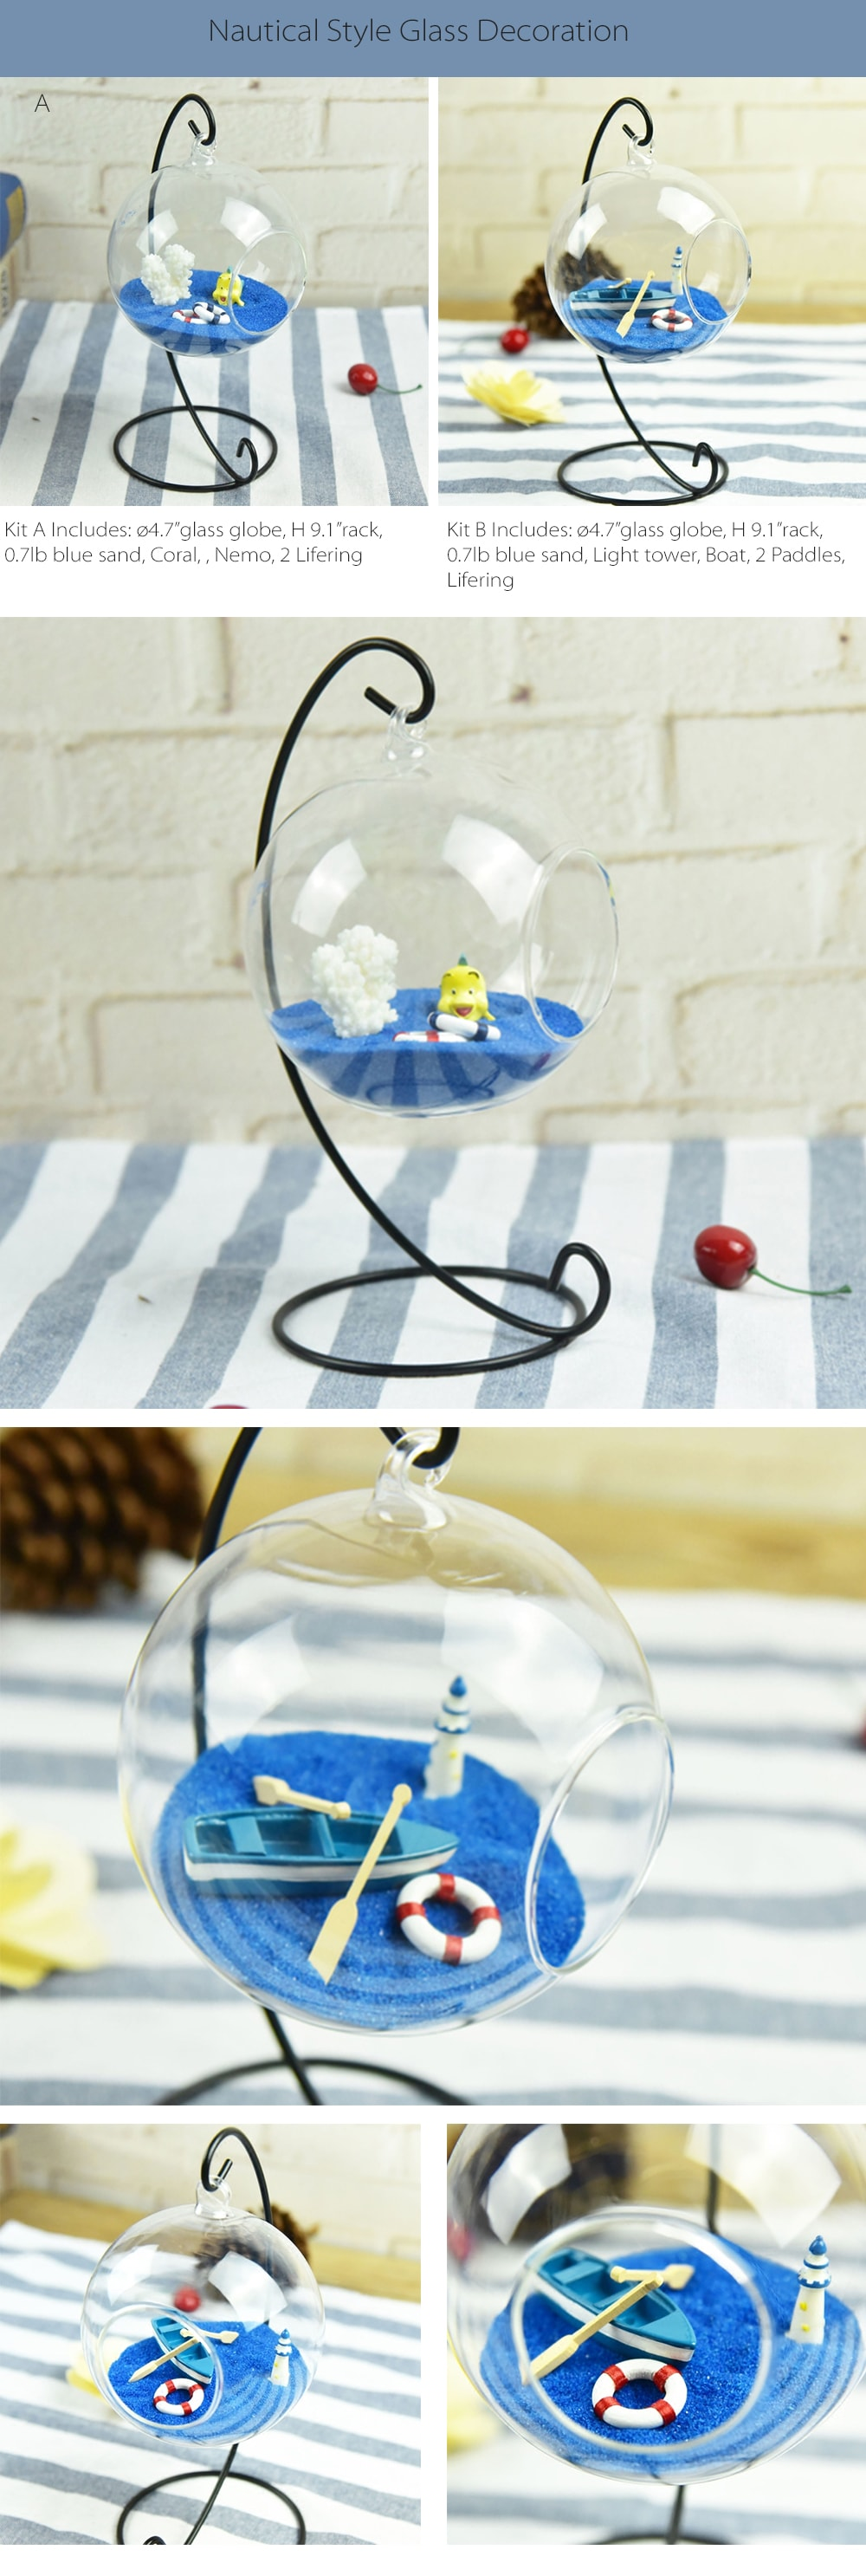 Nautical Style Glass Decoration Collection Perfect Table Decoration Stuff